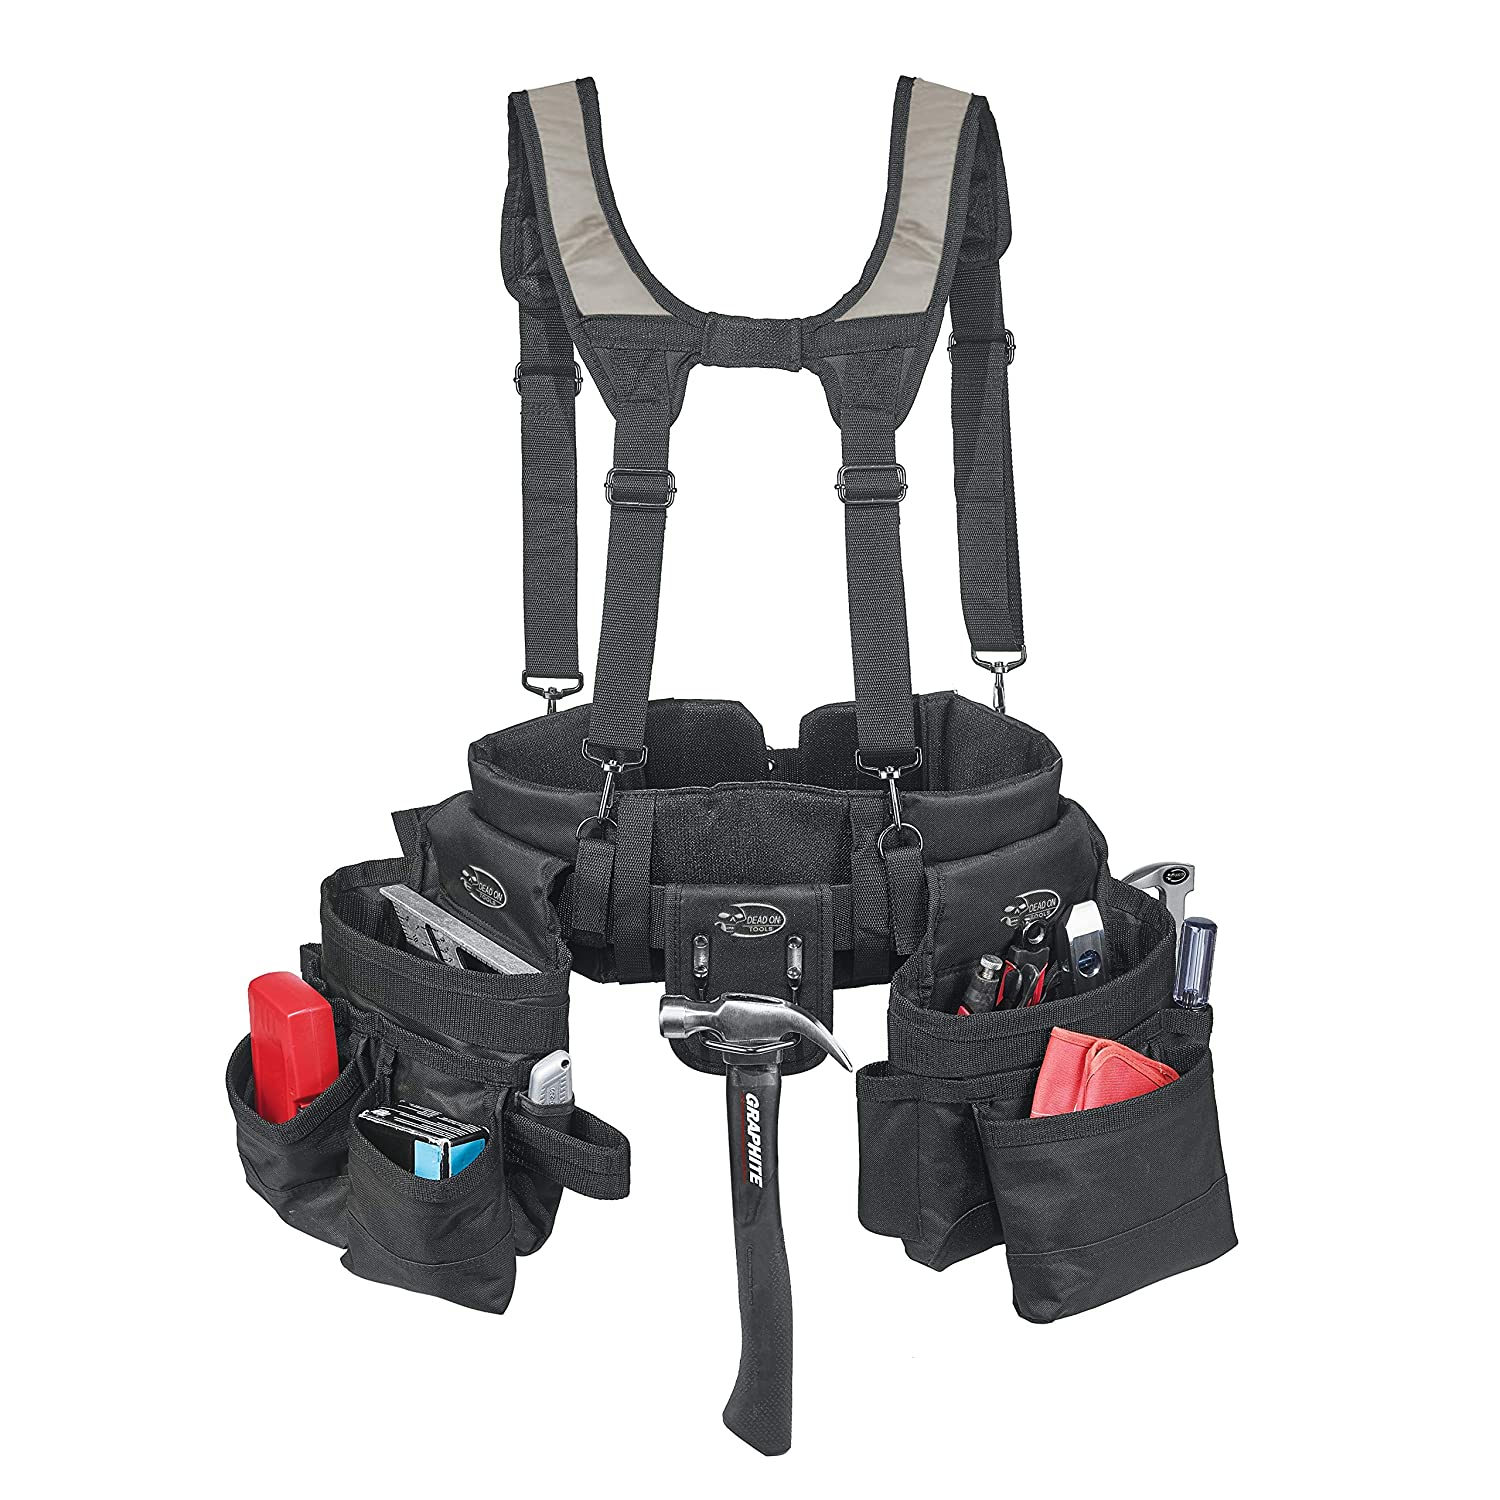 Dead On DO-FR Framers Rig, 1 Size Fits All